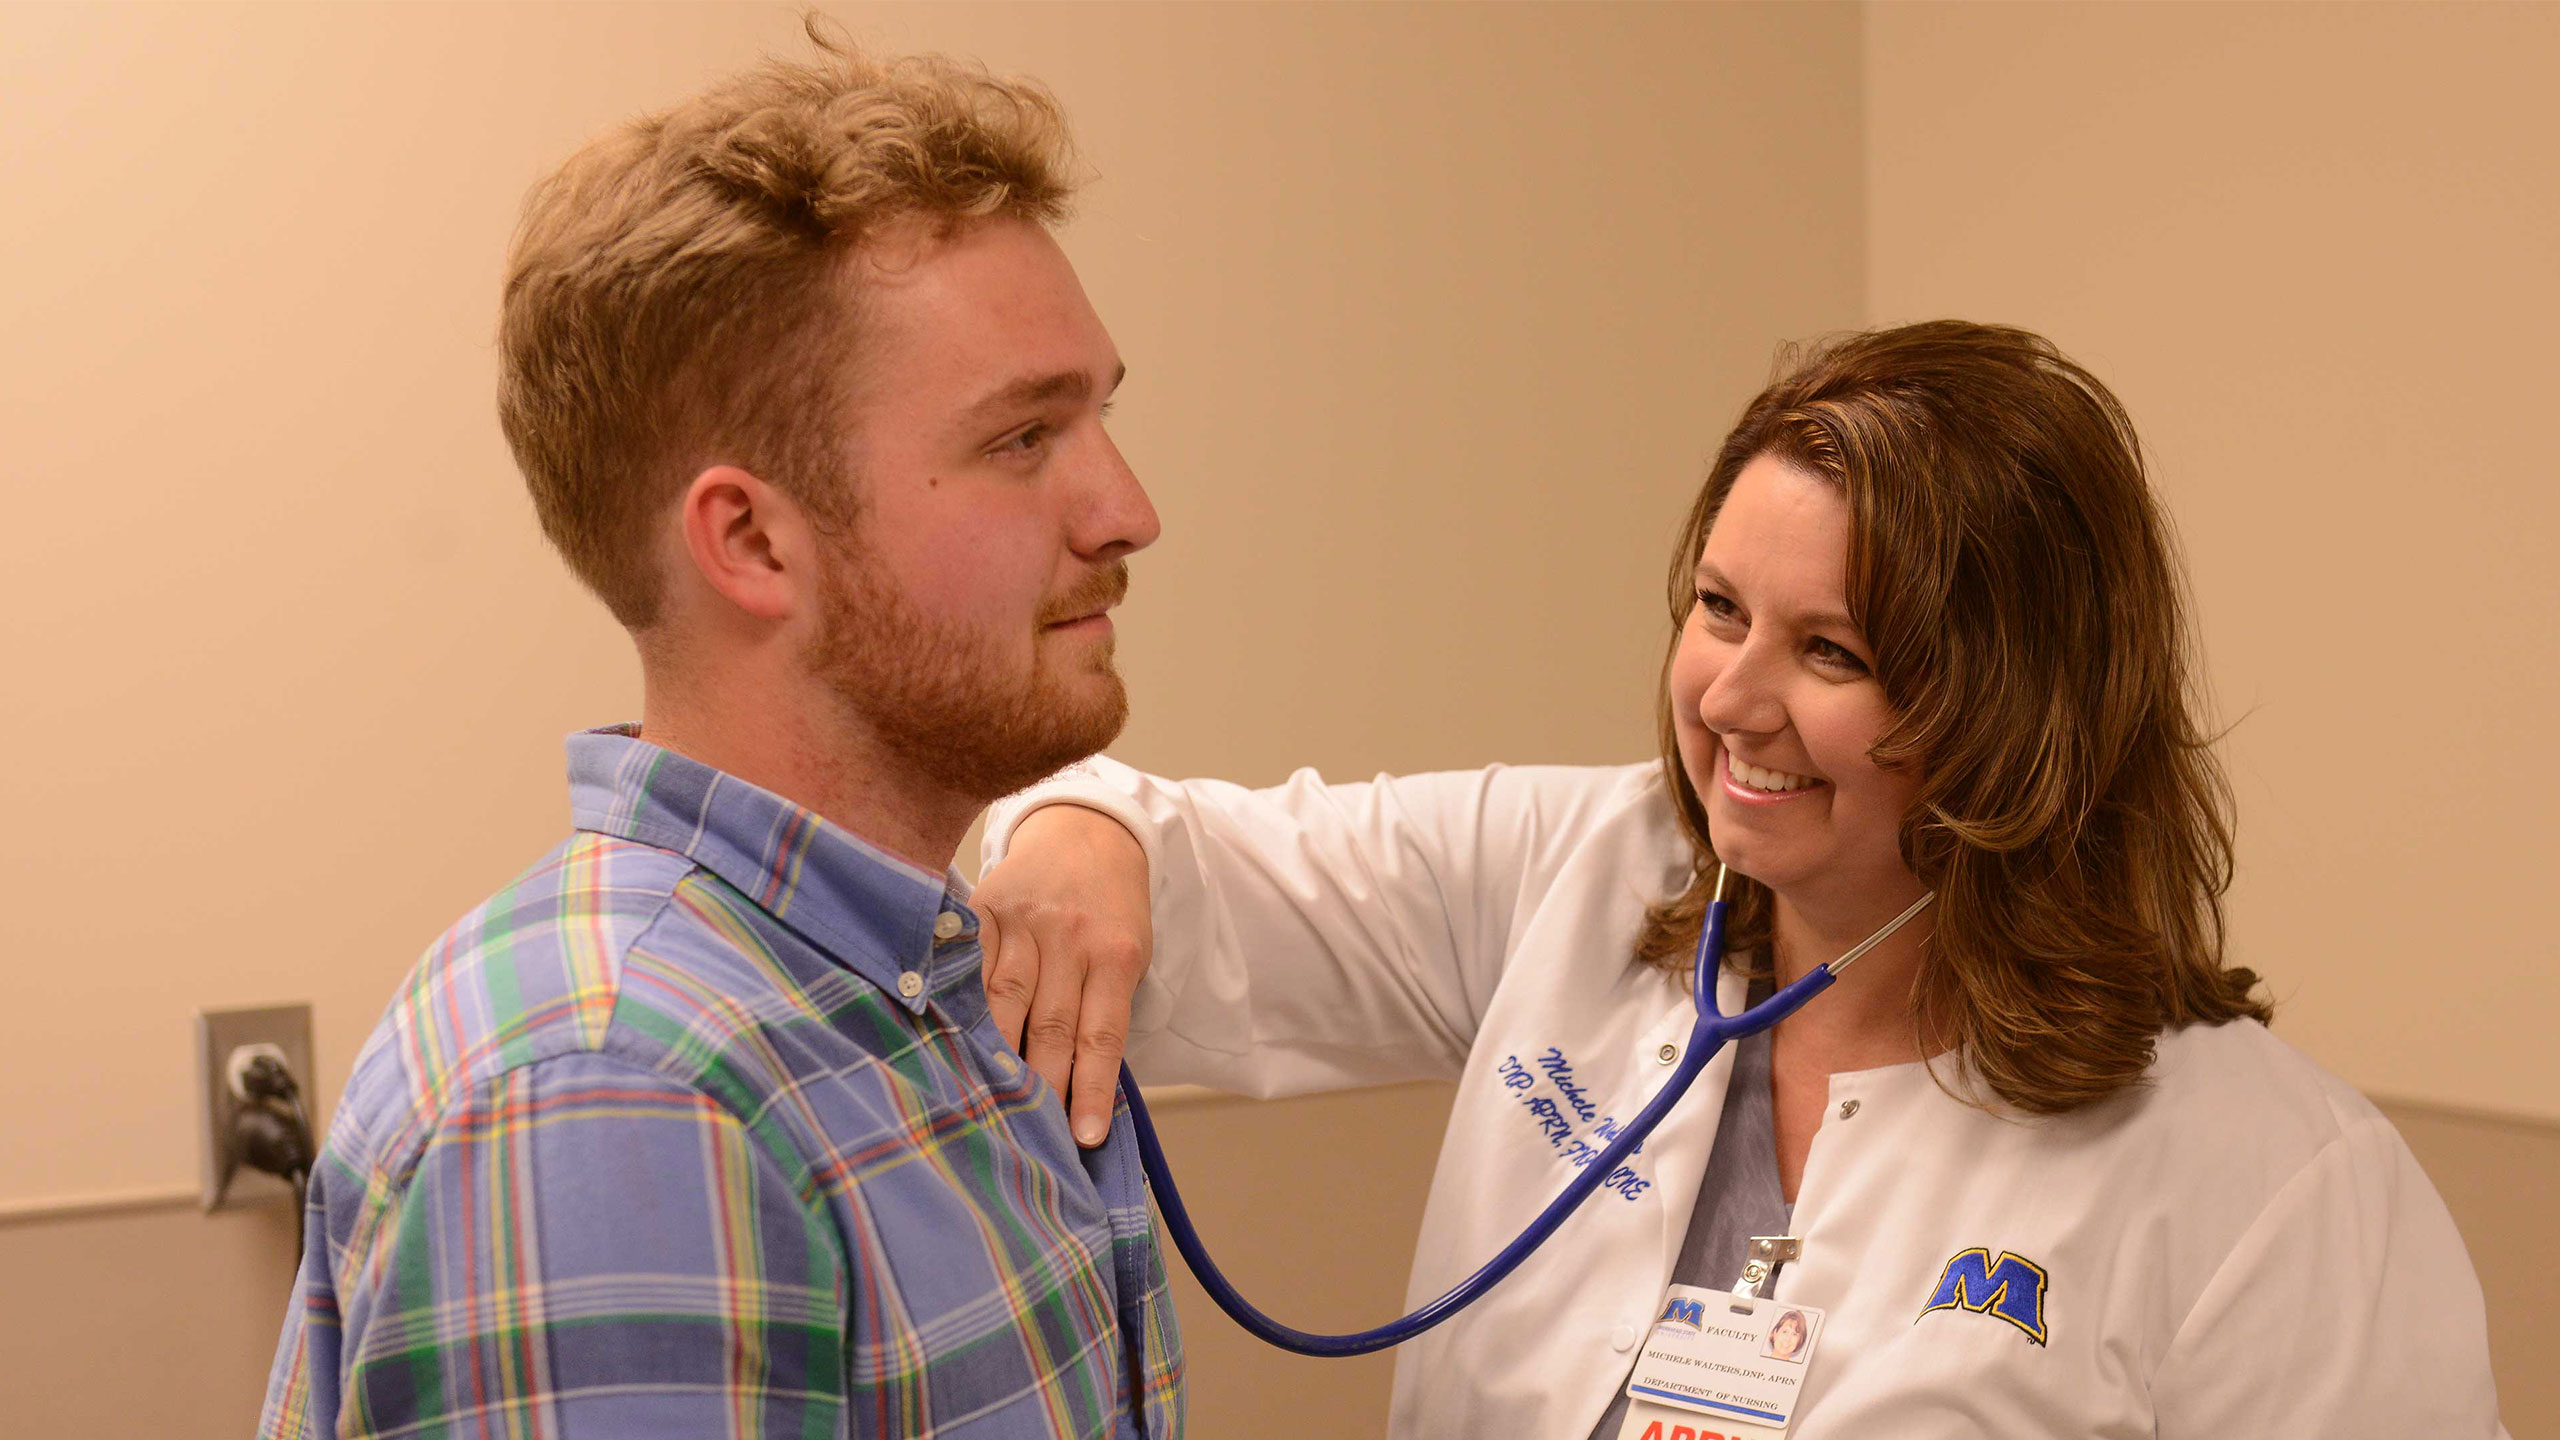 Master of Science in Nursing - Family Nurse Practitioner Primary Care Program